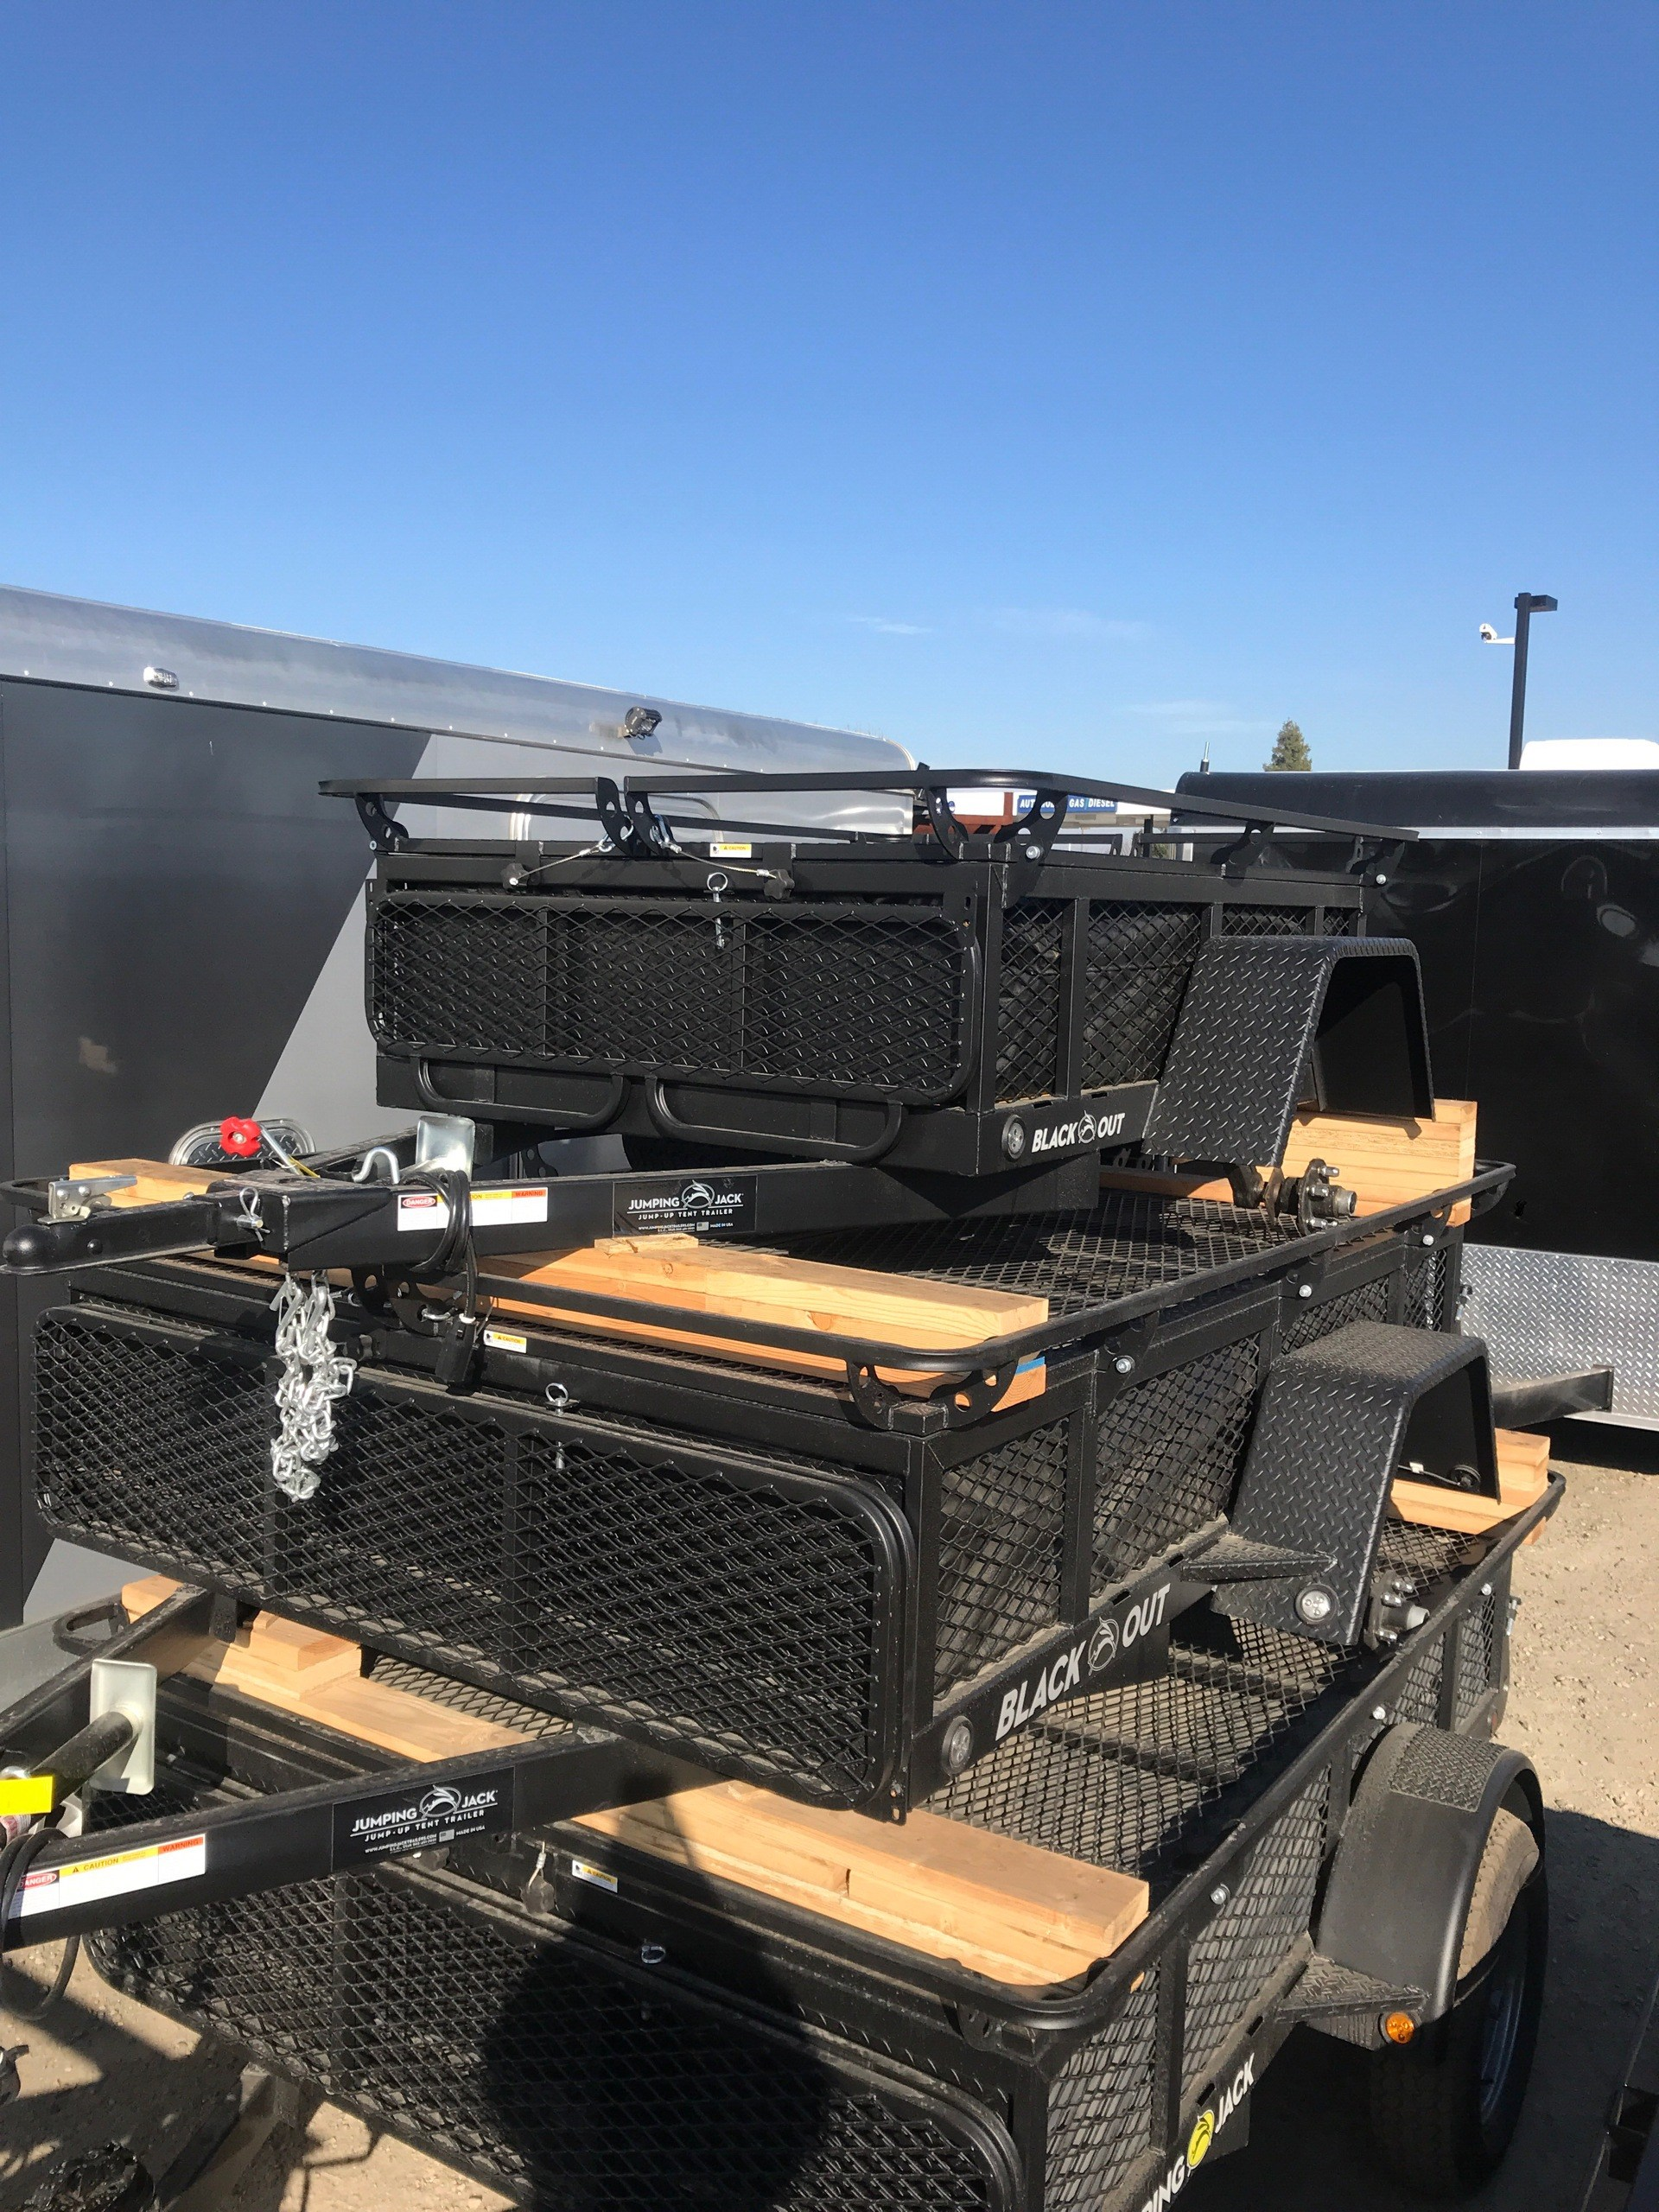 2018 Jumping Jack 4X6 BLACKOUT TRAILER W/ 6u0027 TENT in Elk Grove California & California Custom Trailers u0026 Power Sports u003e Showroom u003e Model Details